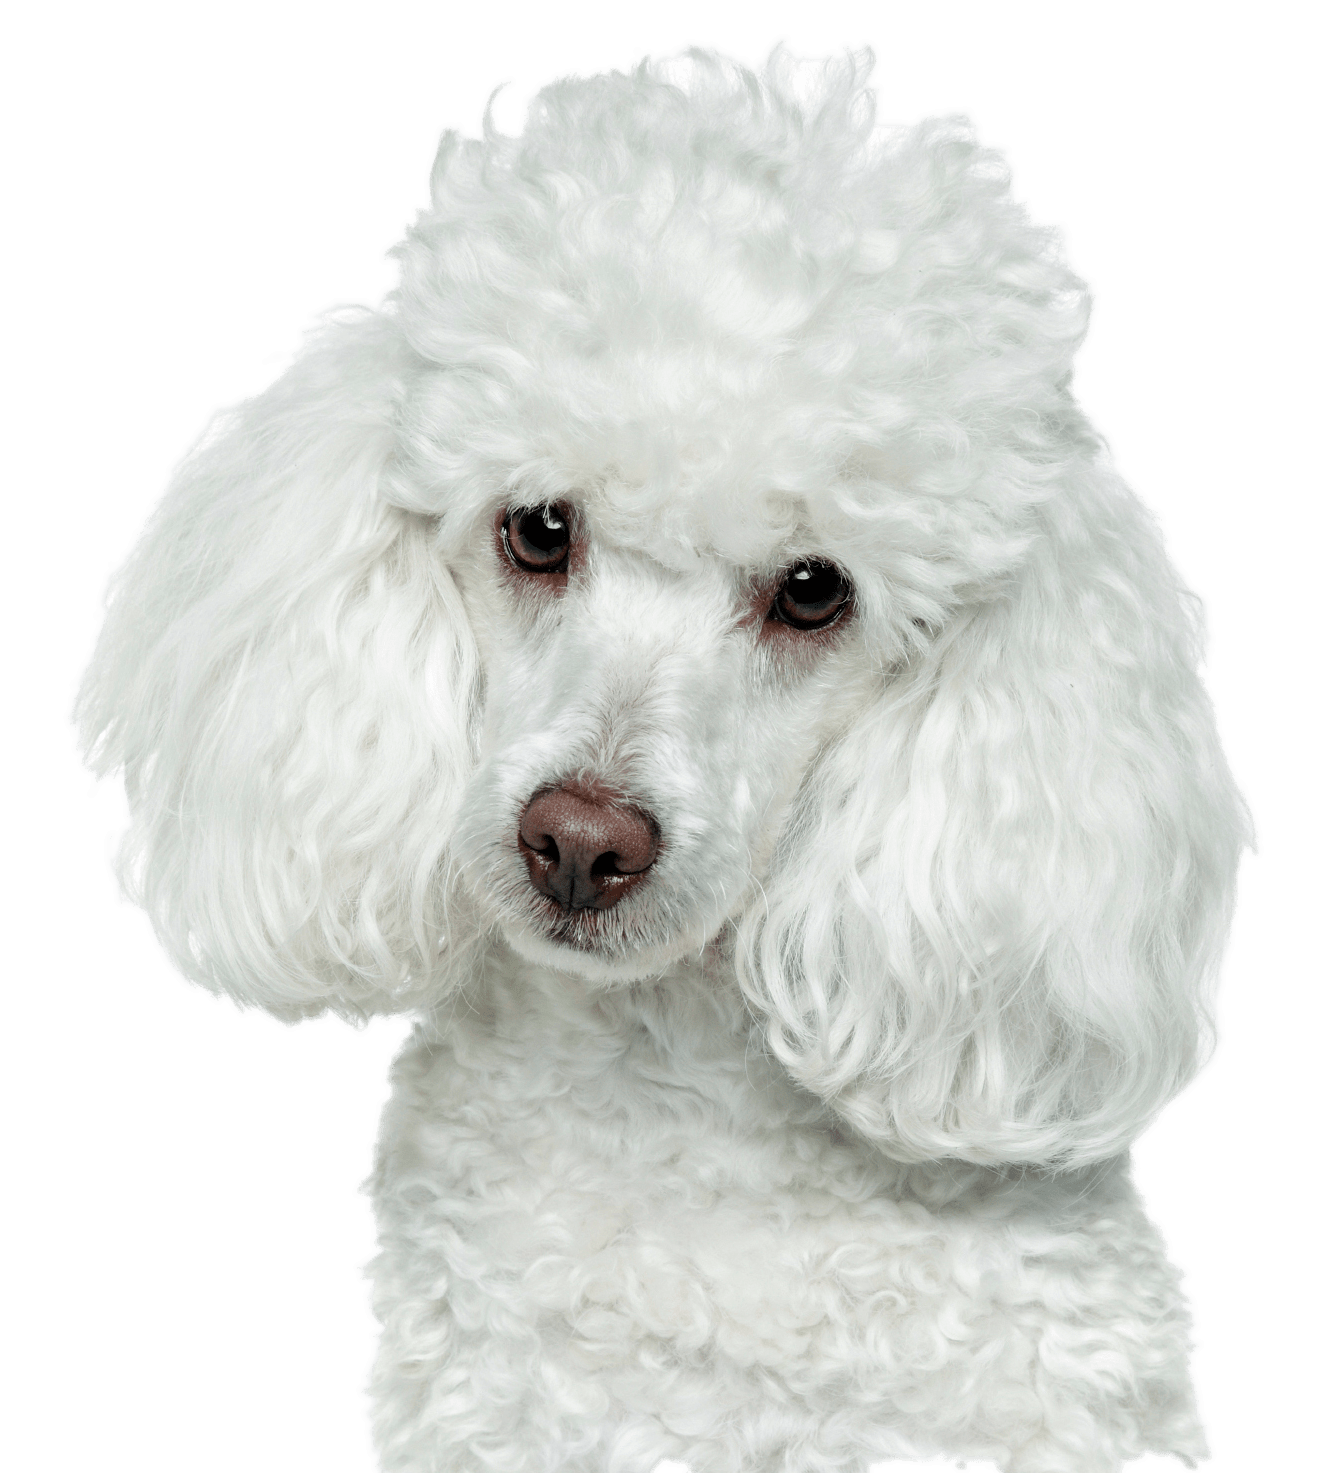 Dog Mammal Vertebrate Canidae White Dog Breed Poodle Toy Poodle Miniature Poodle Carnivore Standard Poodle Non Sporting Group White Dog Breeds Poodle Dog Dogs